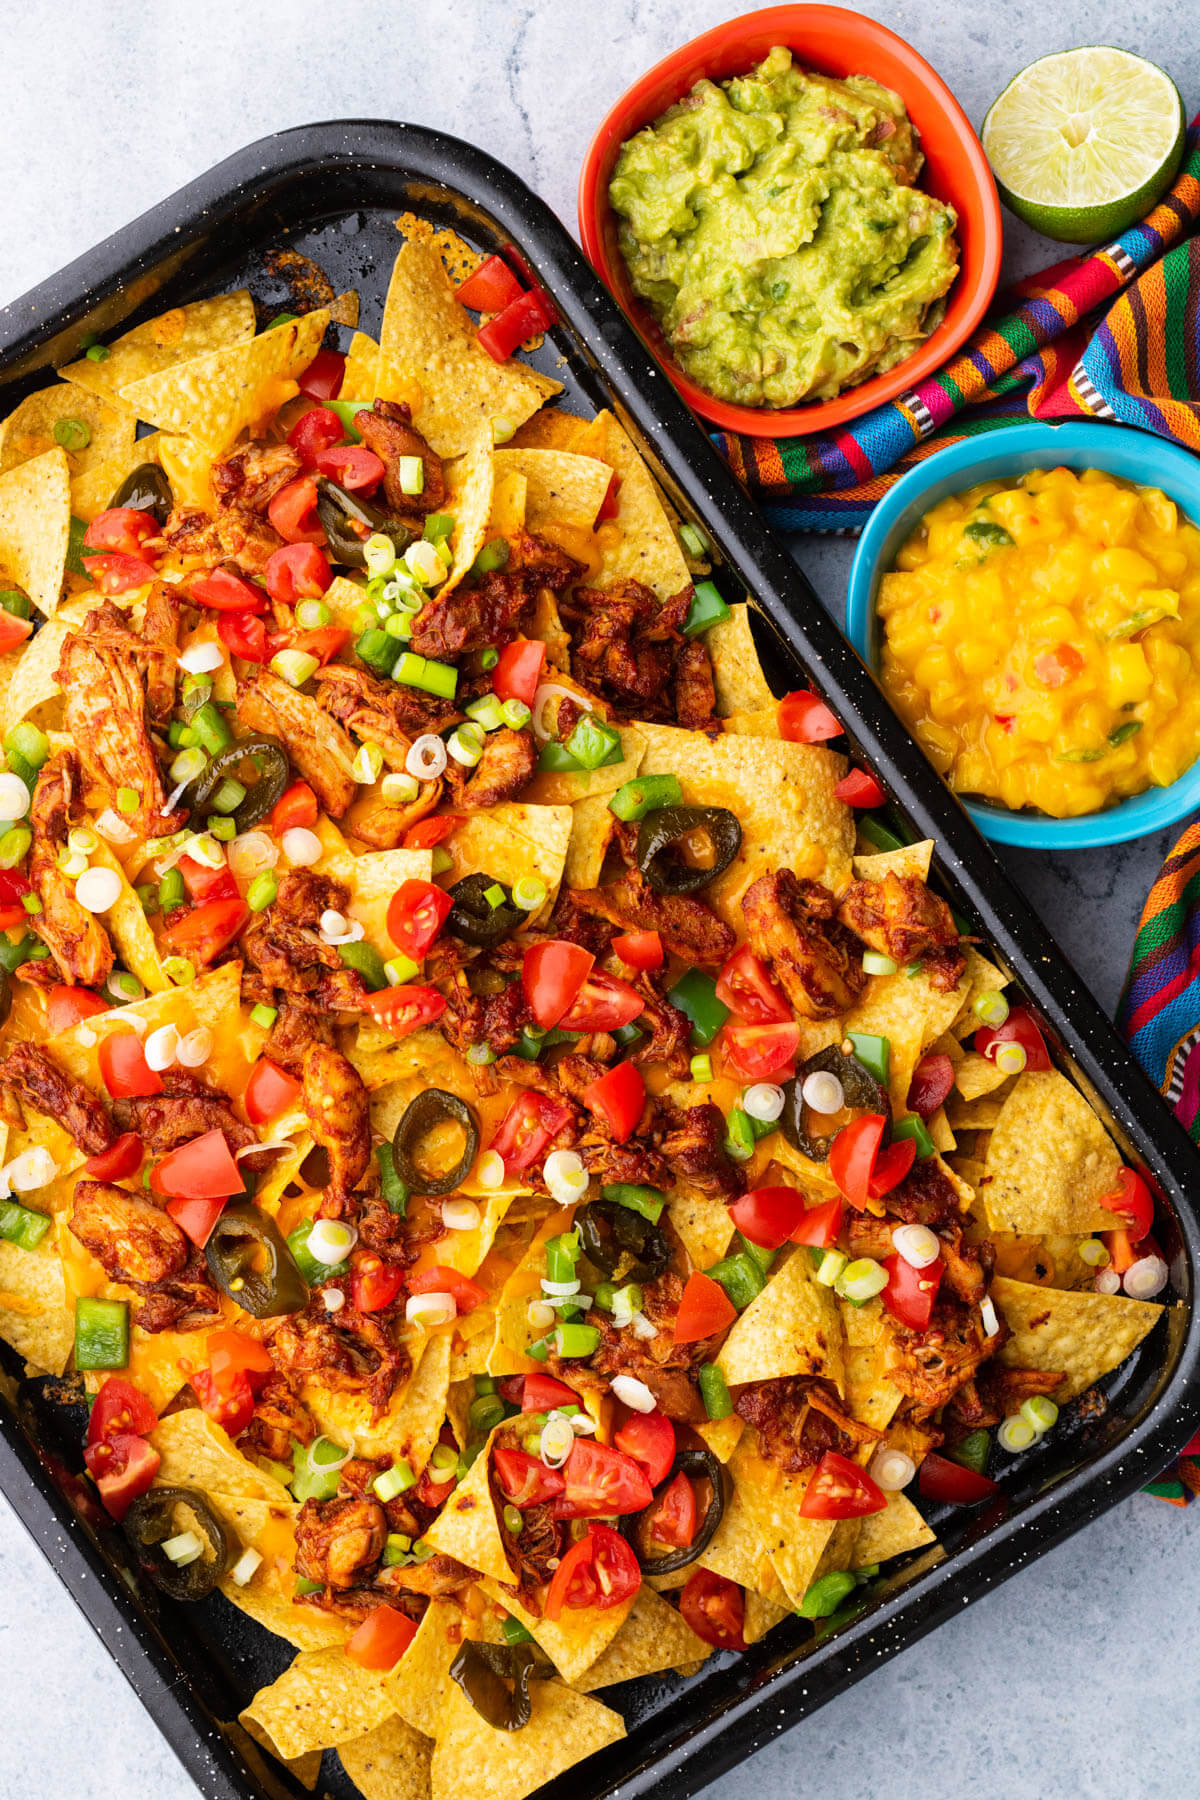 A colourful tray of BBQ Chicken nachos with two small side dishes of mango salsa and guacamole.